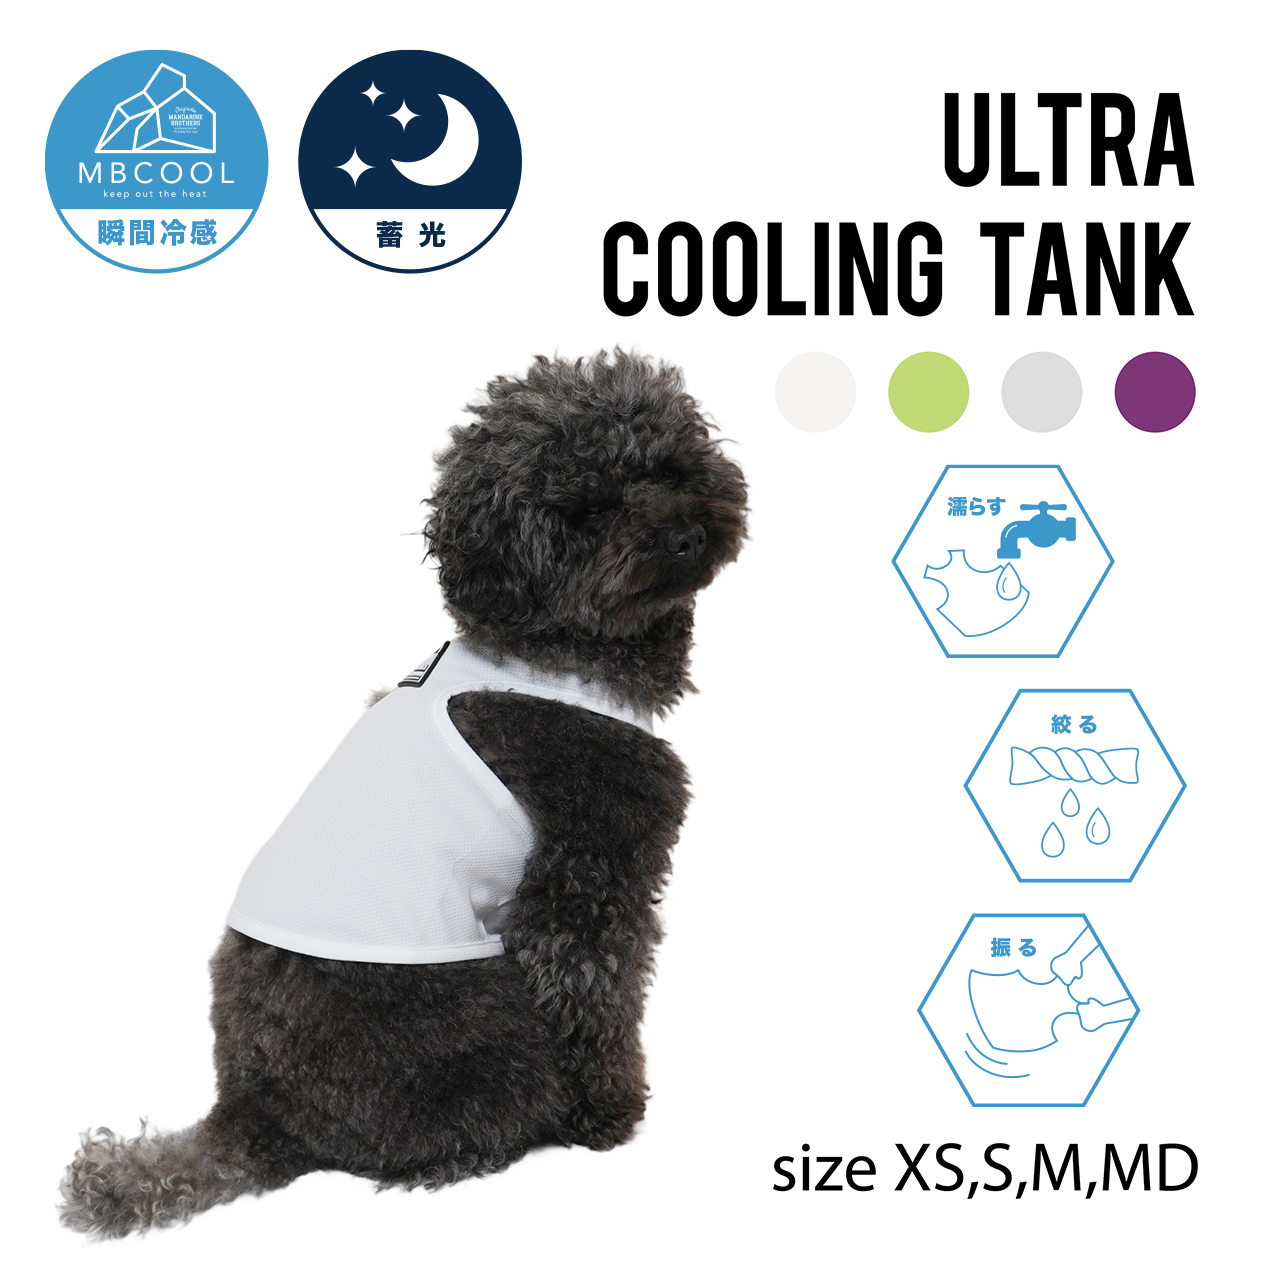 ULTRA COOLING TANK(XS,S,M,MD) ウルトラクーリングタンク